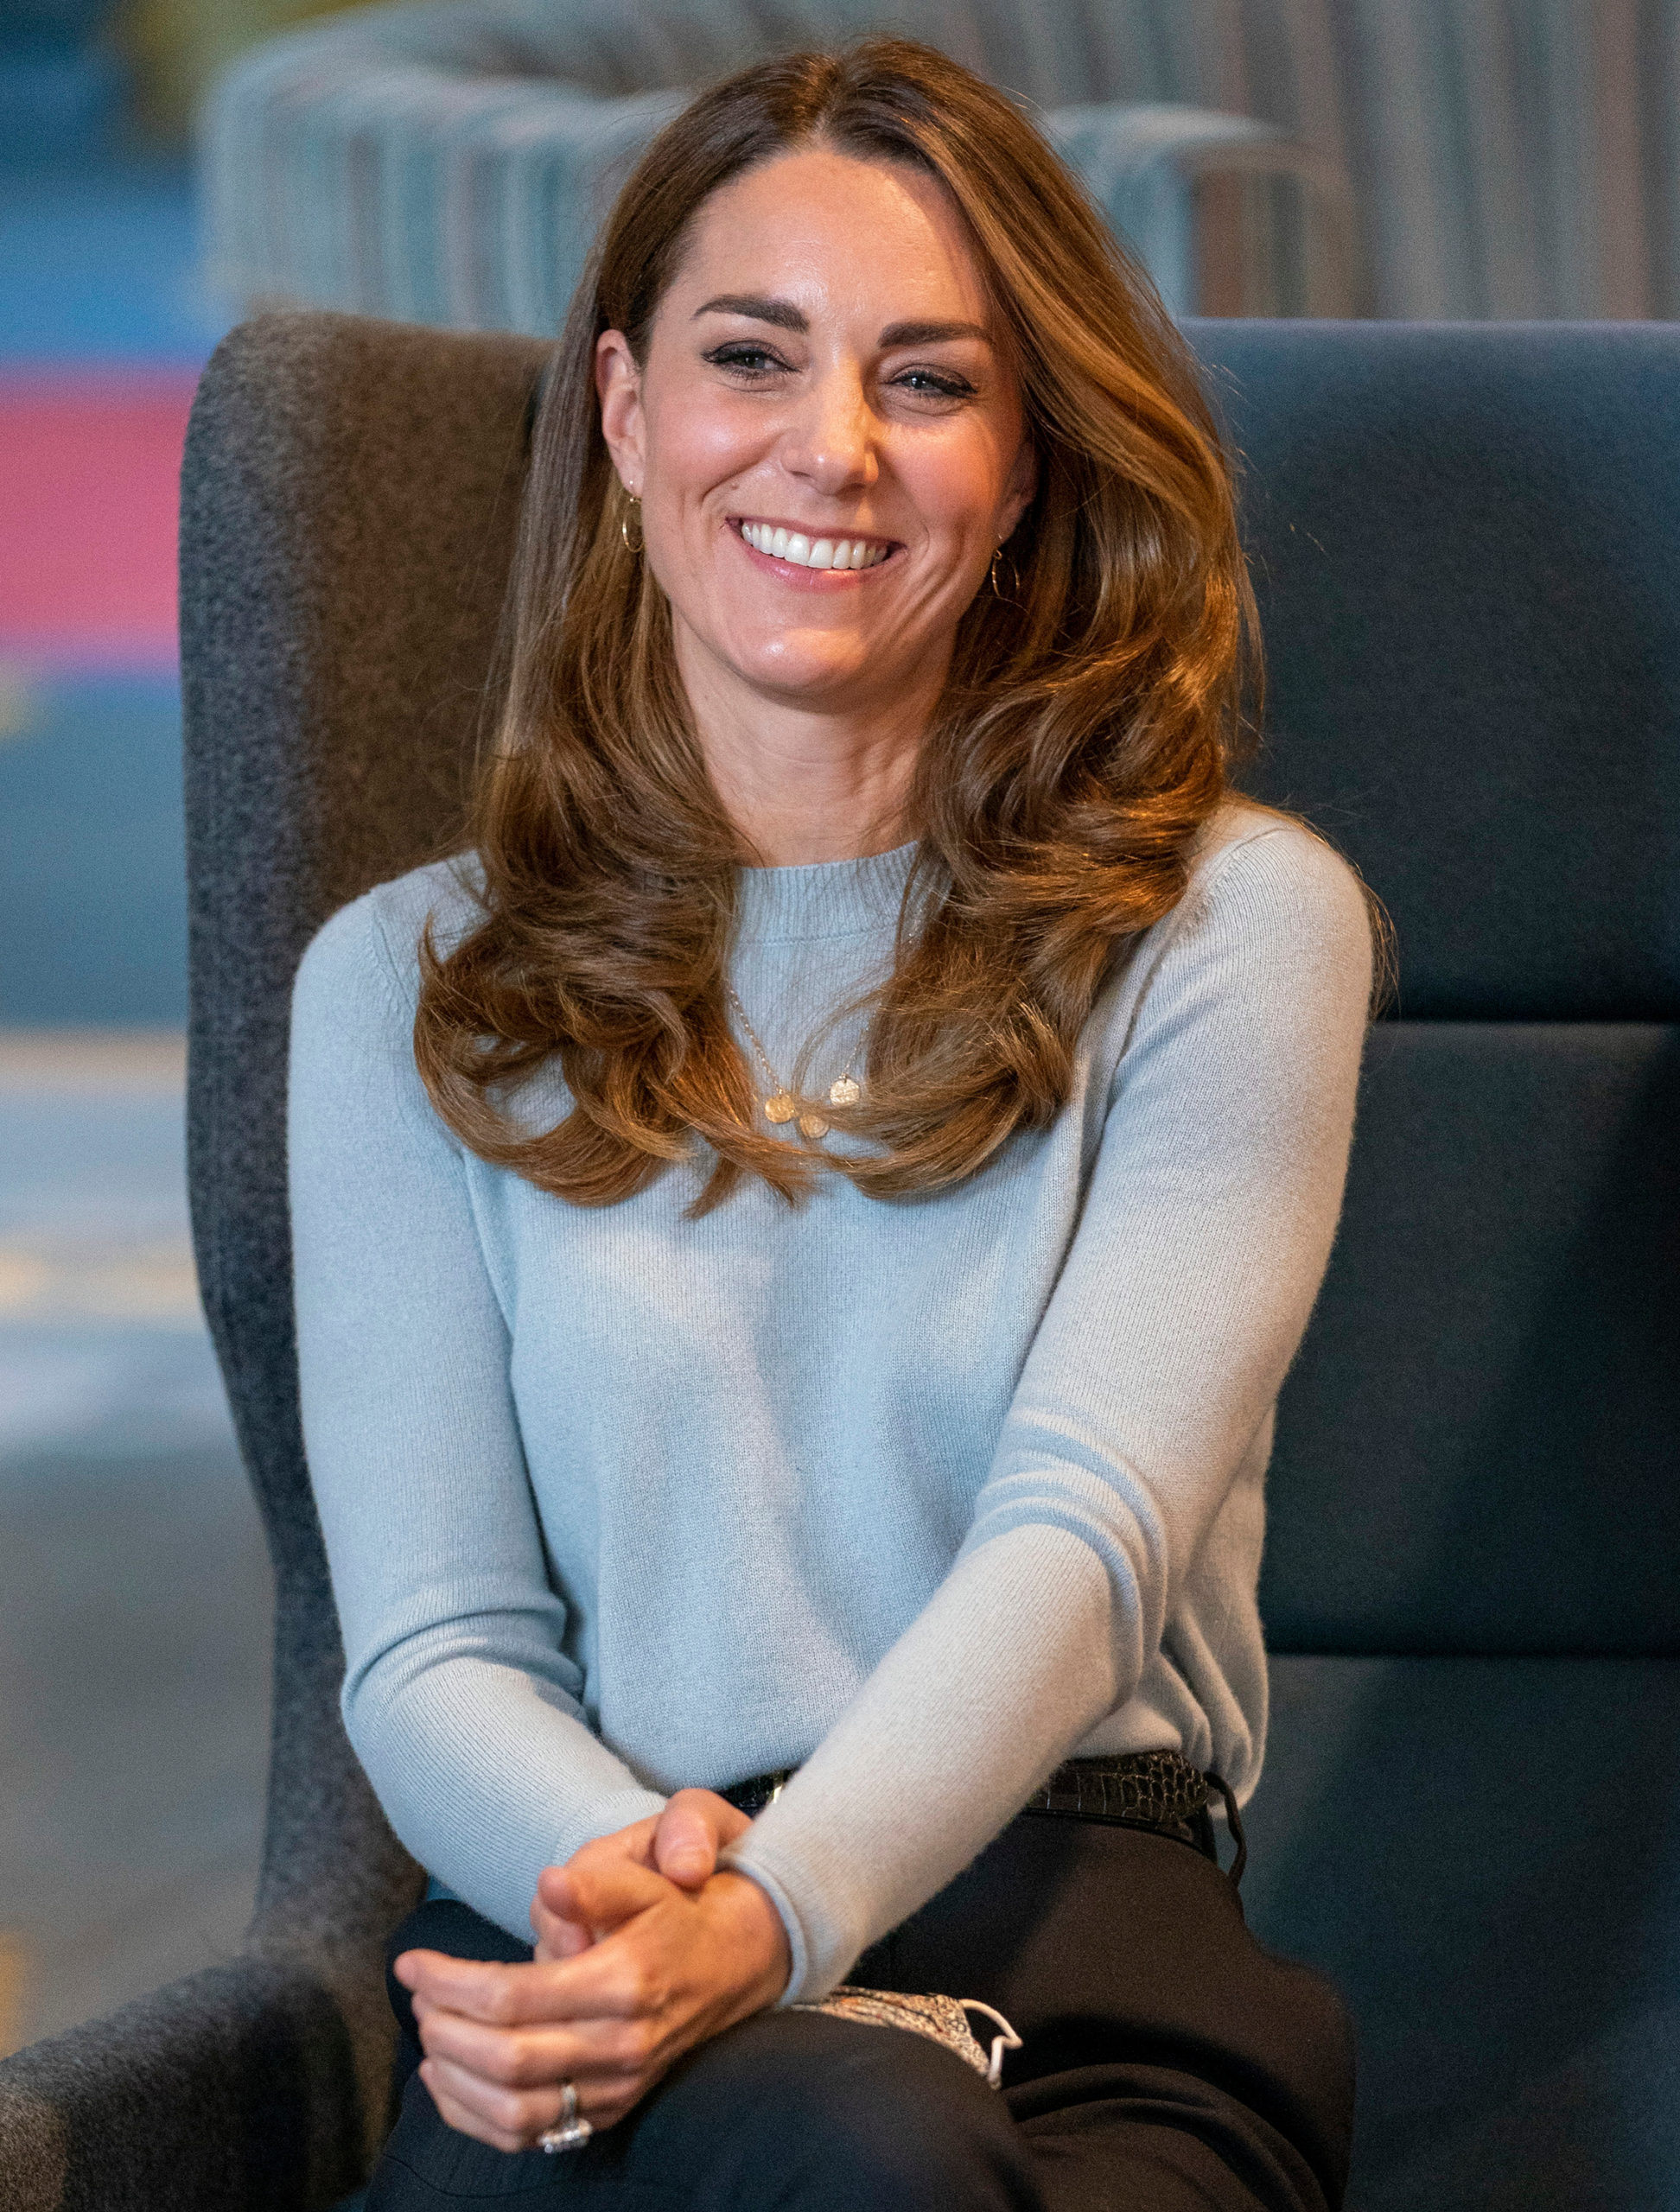 The Duchess of Cambridge: My Favorite Looks